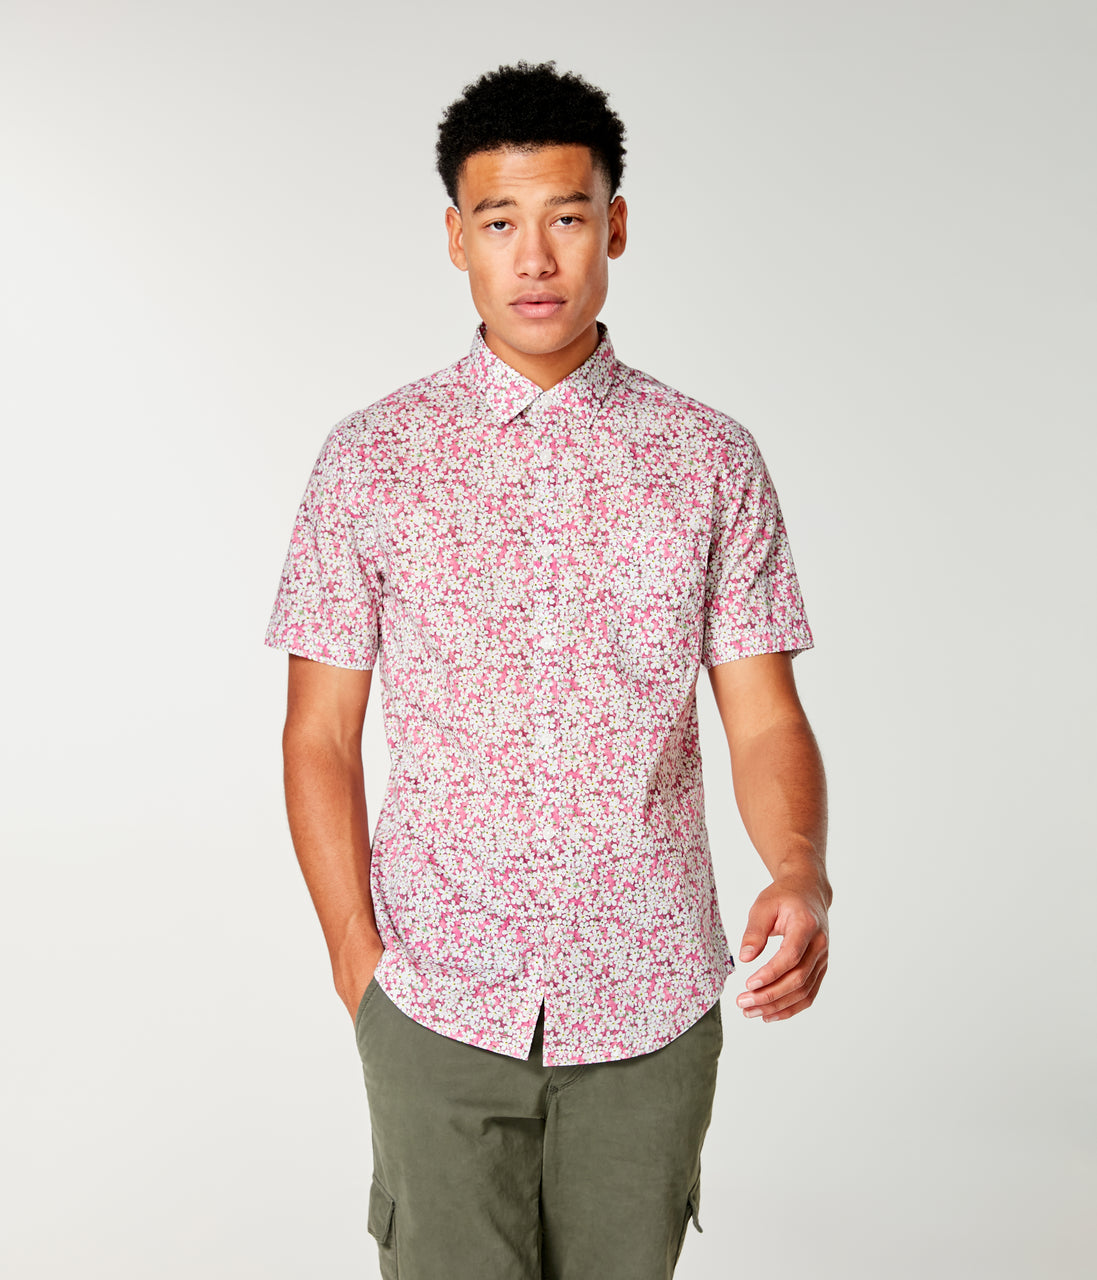 Woven On-Point Shirt - Jazzy Petal Liberty Pond - Good Man Brand - Woven On-Point Shirt - Jazzy Petal Liberty Pond